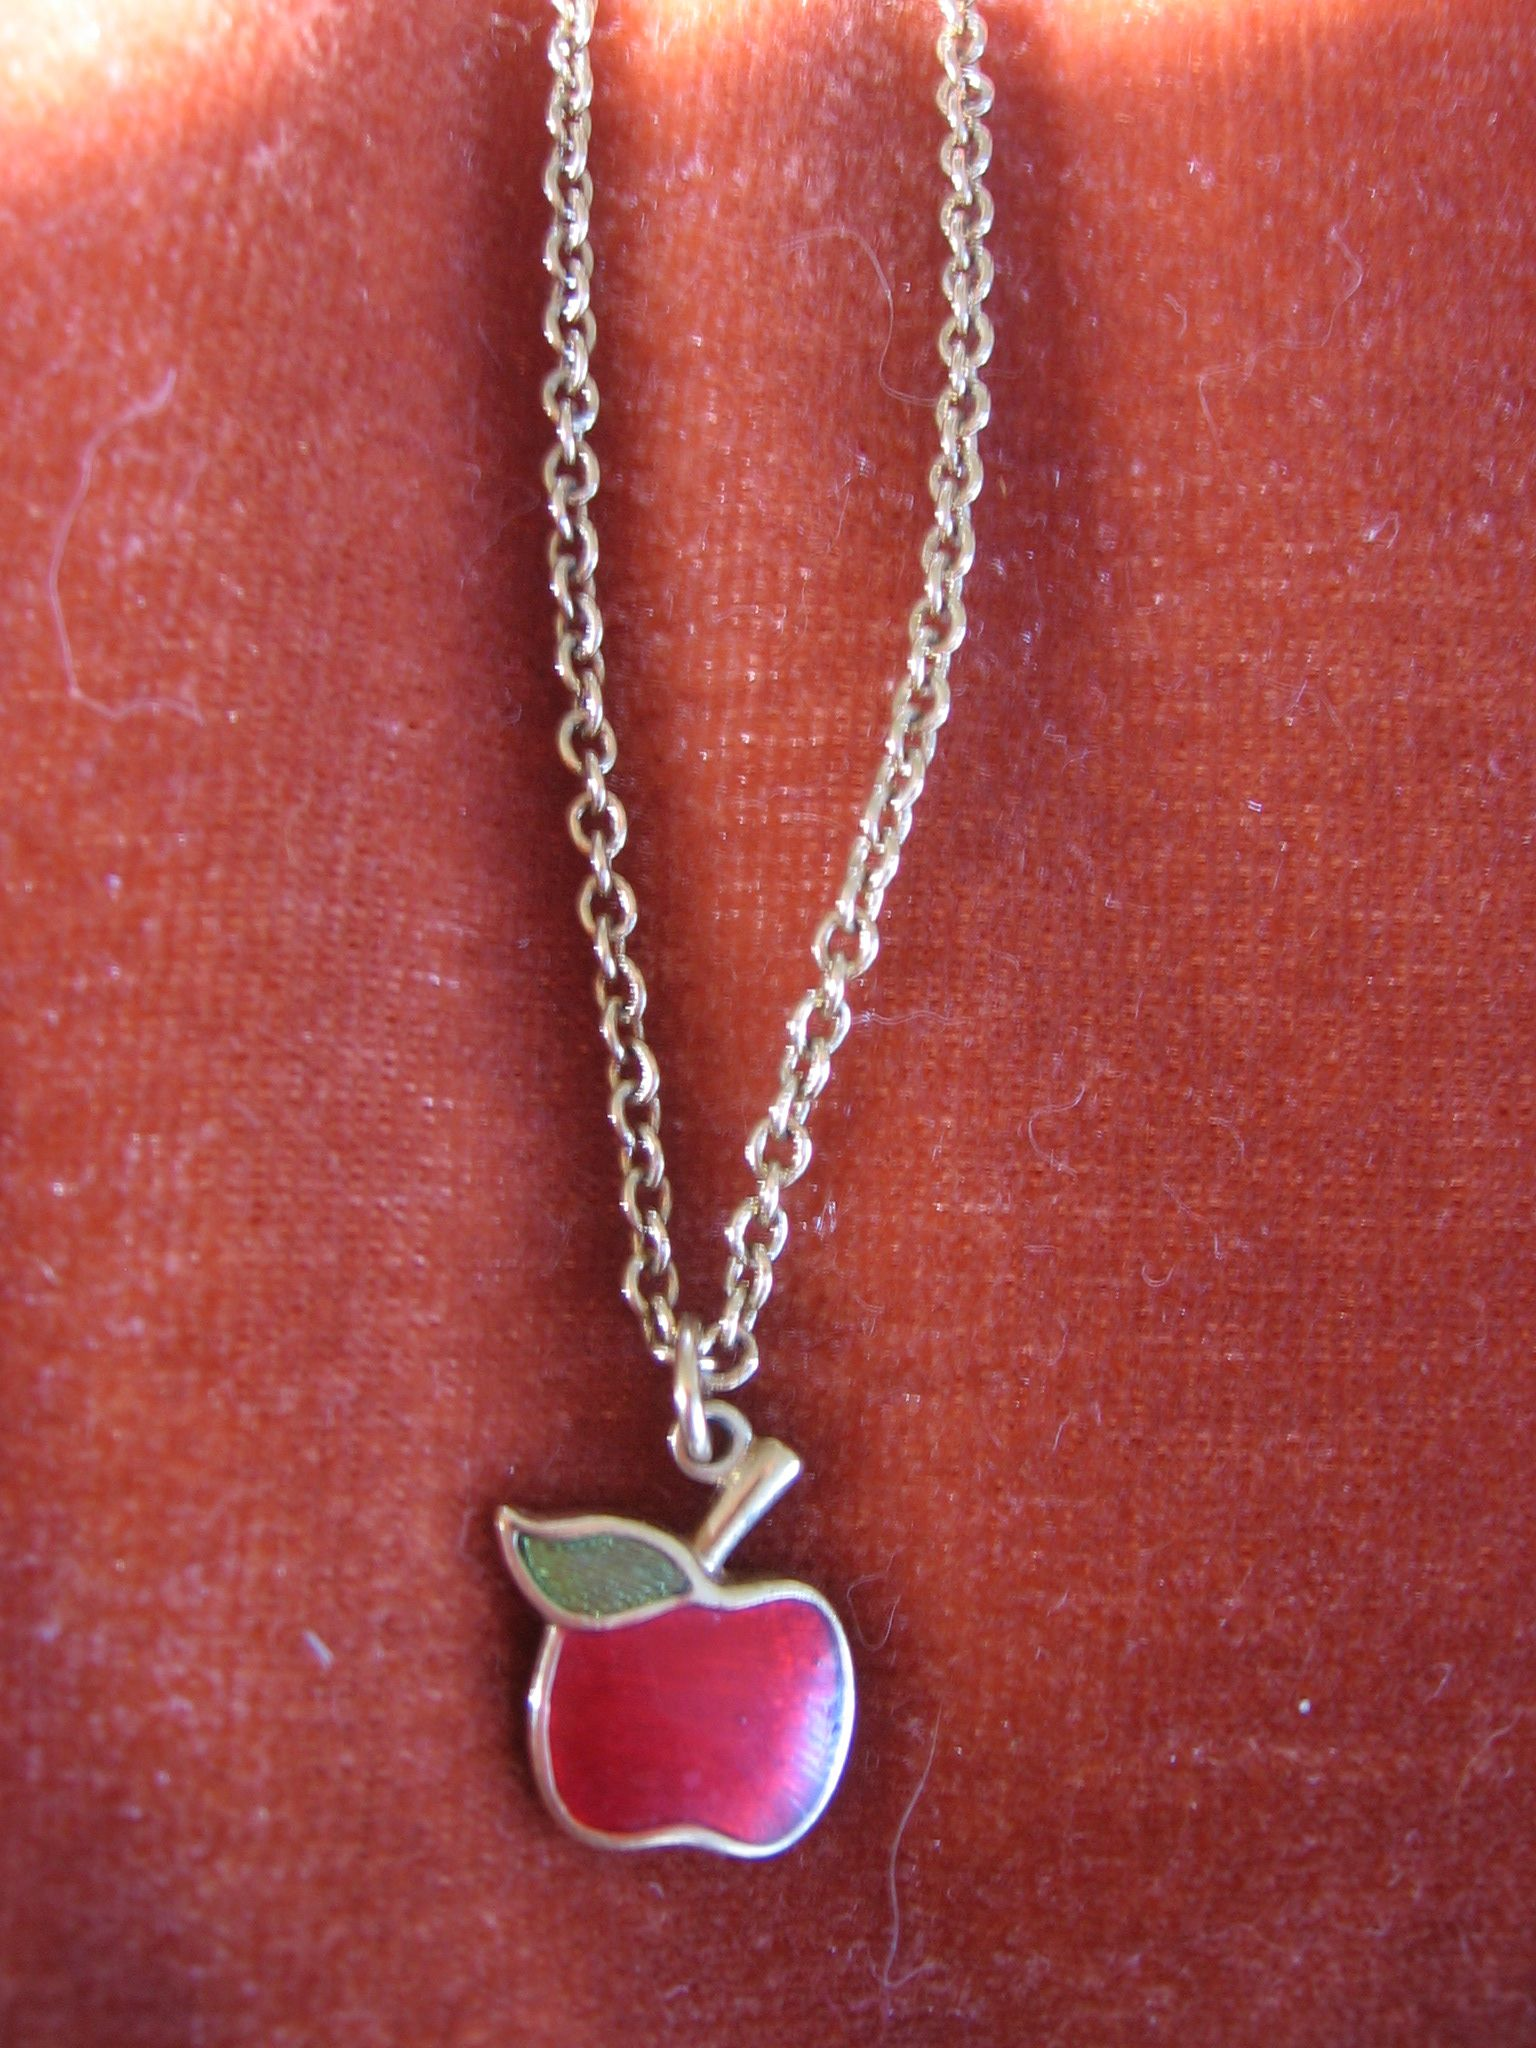 1439c390389ce Vintage Goldtone Enamel Avon Apple Necklace - I had this along with ...